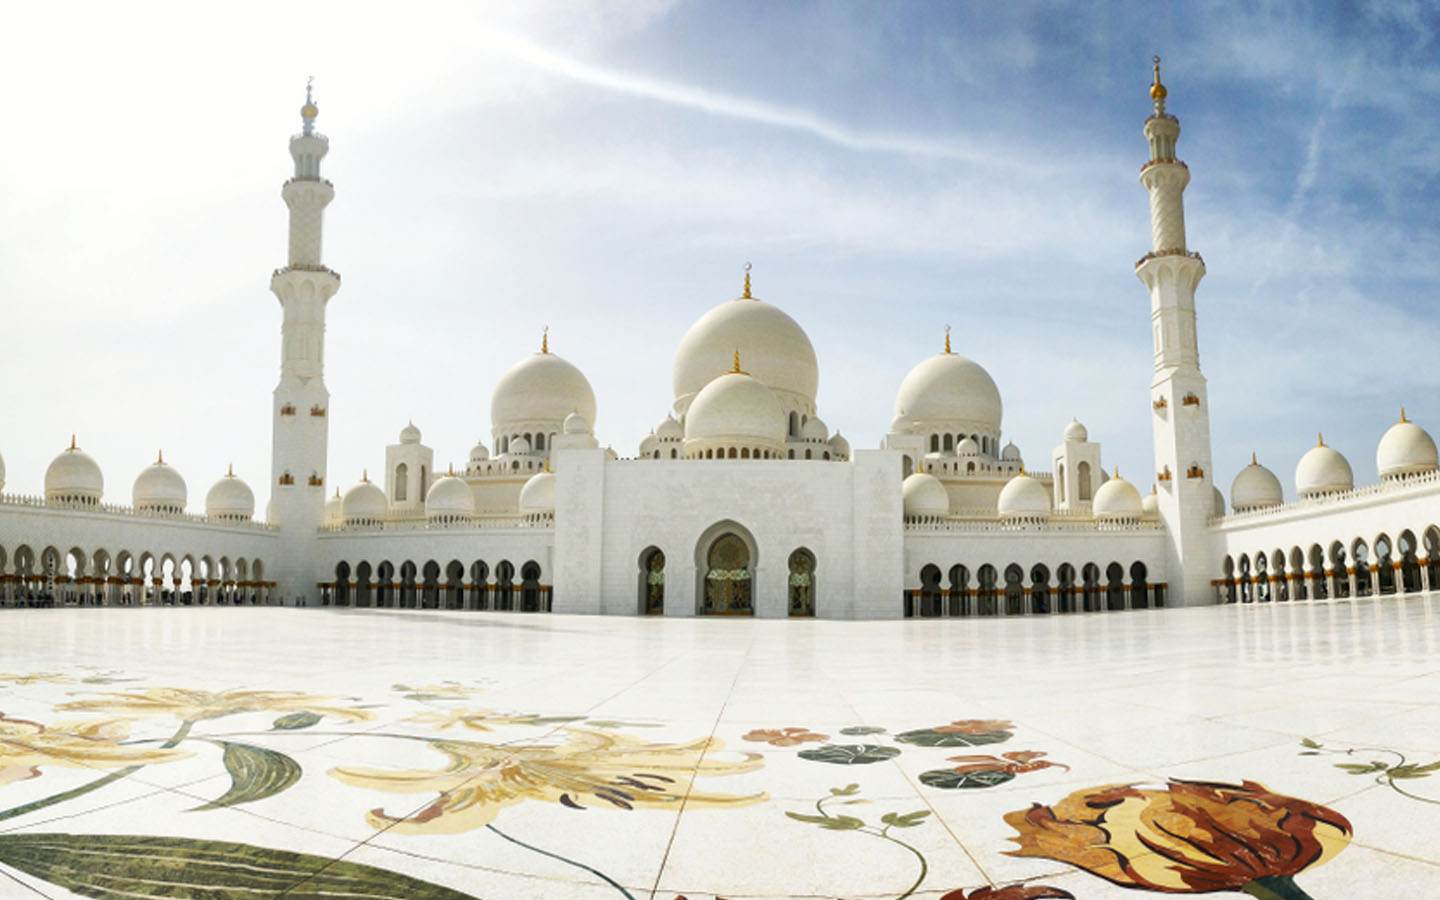 A landscape picture of Sheikh Zayed Mosque